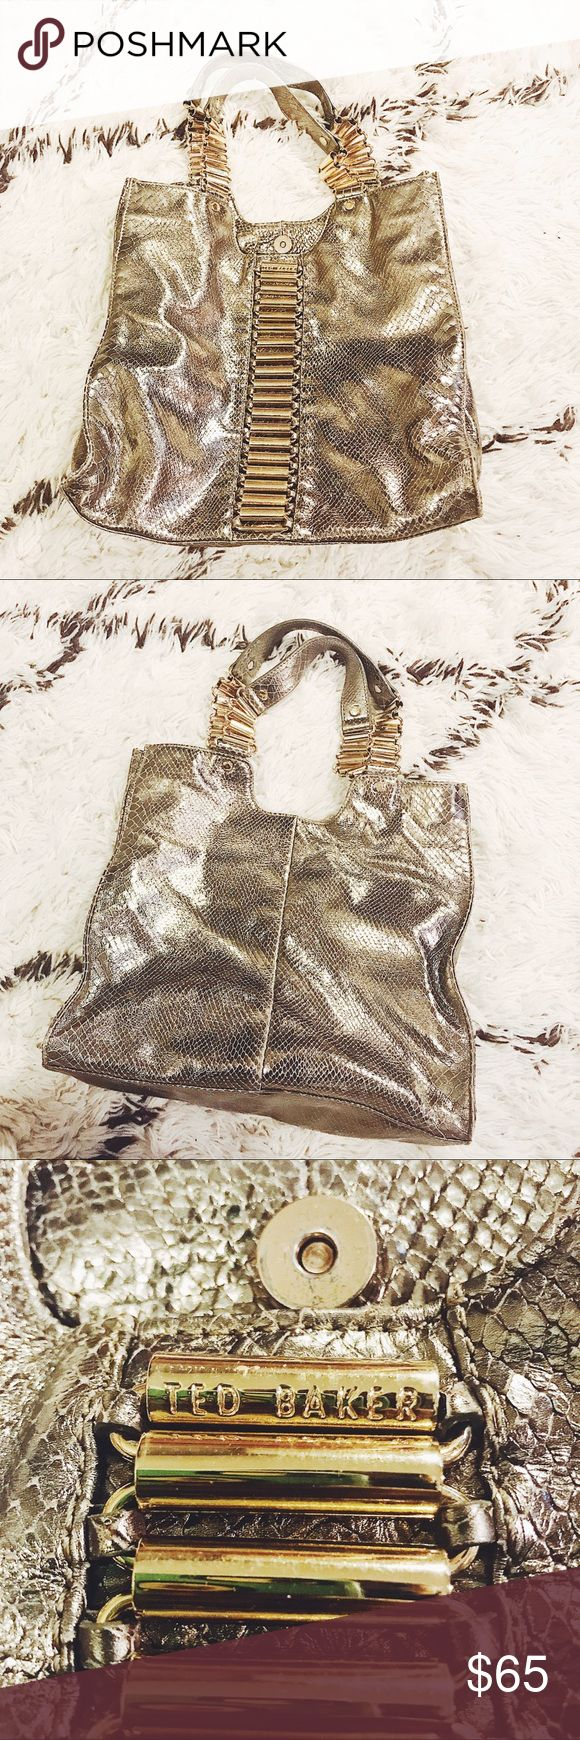 Ted Baker | Limited Edition Snakeskin Purse, Gold Gorgeous Limited Edition Ted Baker purse. Gold snakeskin pattern and texture. Gold hardware. Magnetic closure. Interior zip pocket. Some wear on bottom/sides (see photos) Smoke free, pet free home! Ted Baker Bags